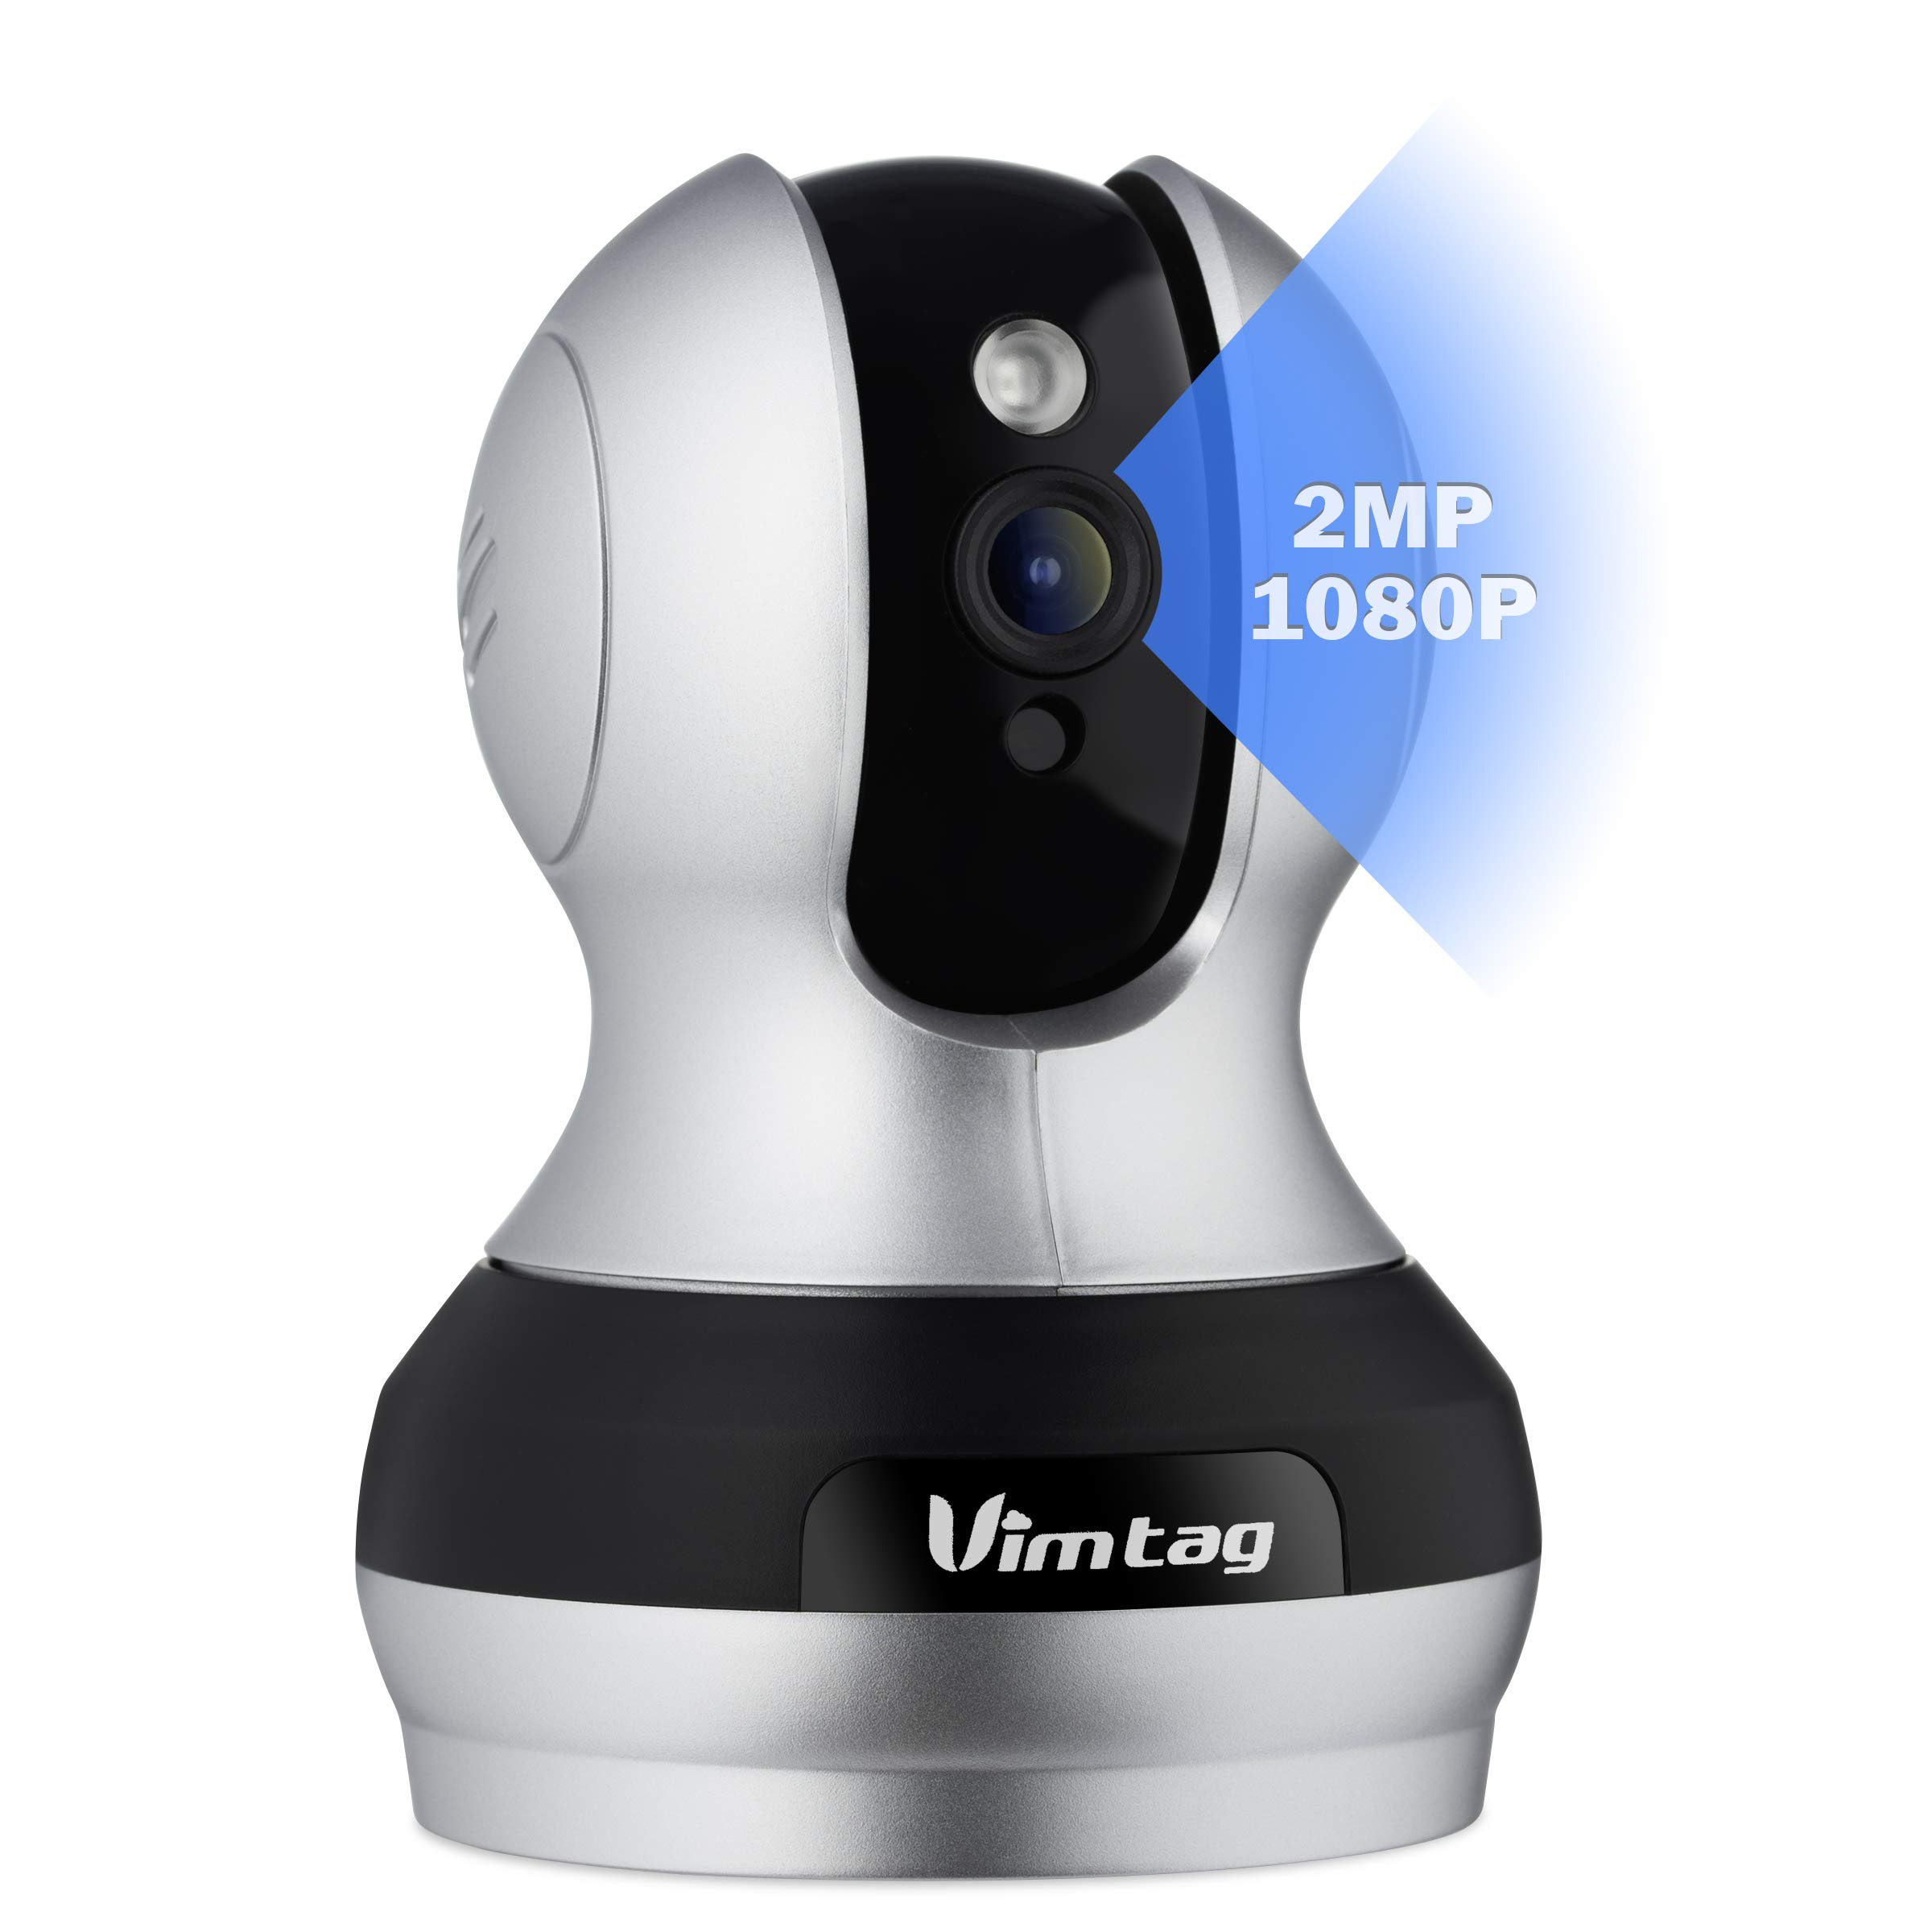 Vimtag VT-361 Super HD 2MP WiFi Video Monitoring Surveillance Security Camera, Plug/Play, Pan/Tilt with Two-Way Audio & Night Vision 1080P Supports Alexa by VIMTAG